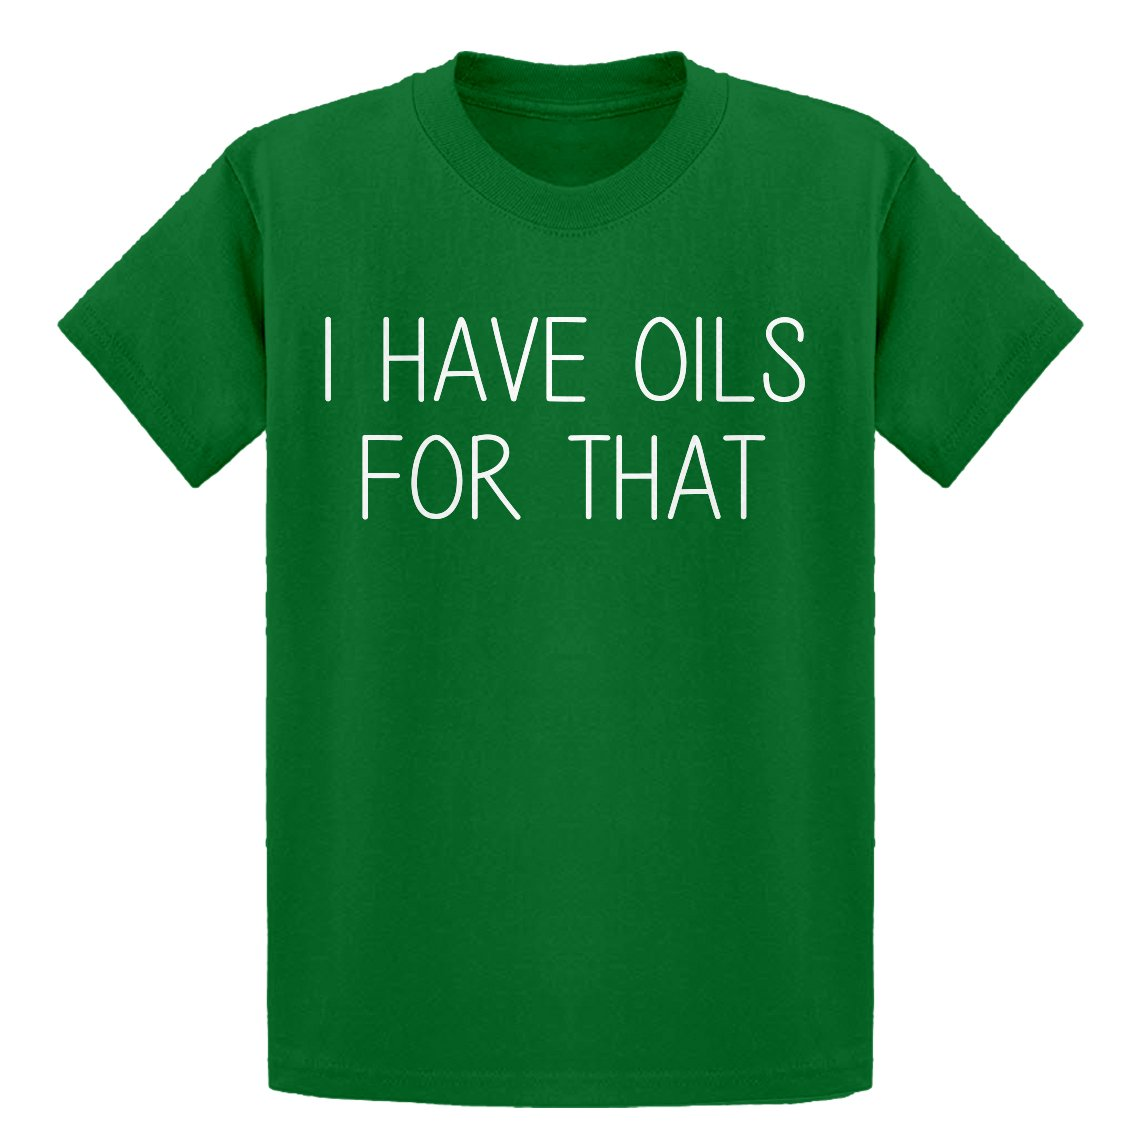 Indica Plateau Youth I Have Oils for That Kids T-Shirt